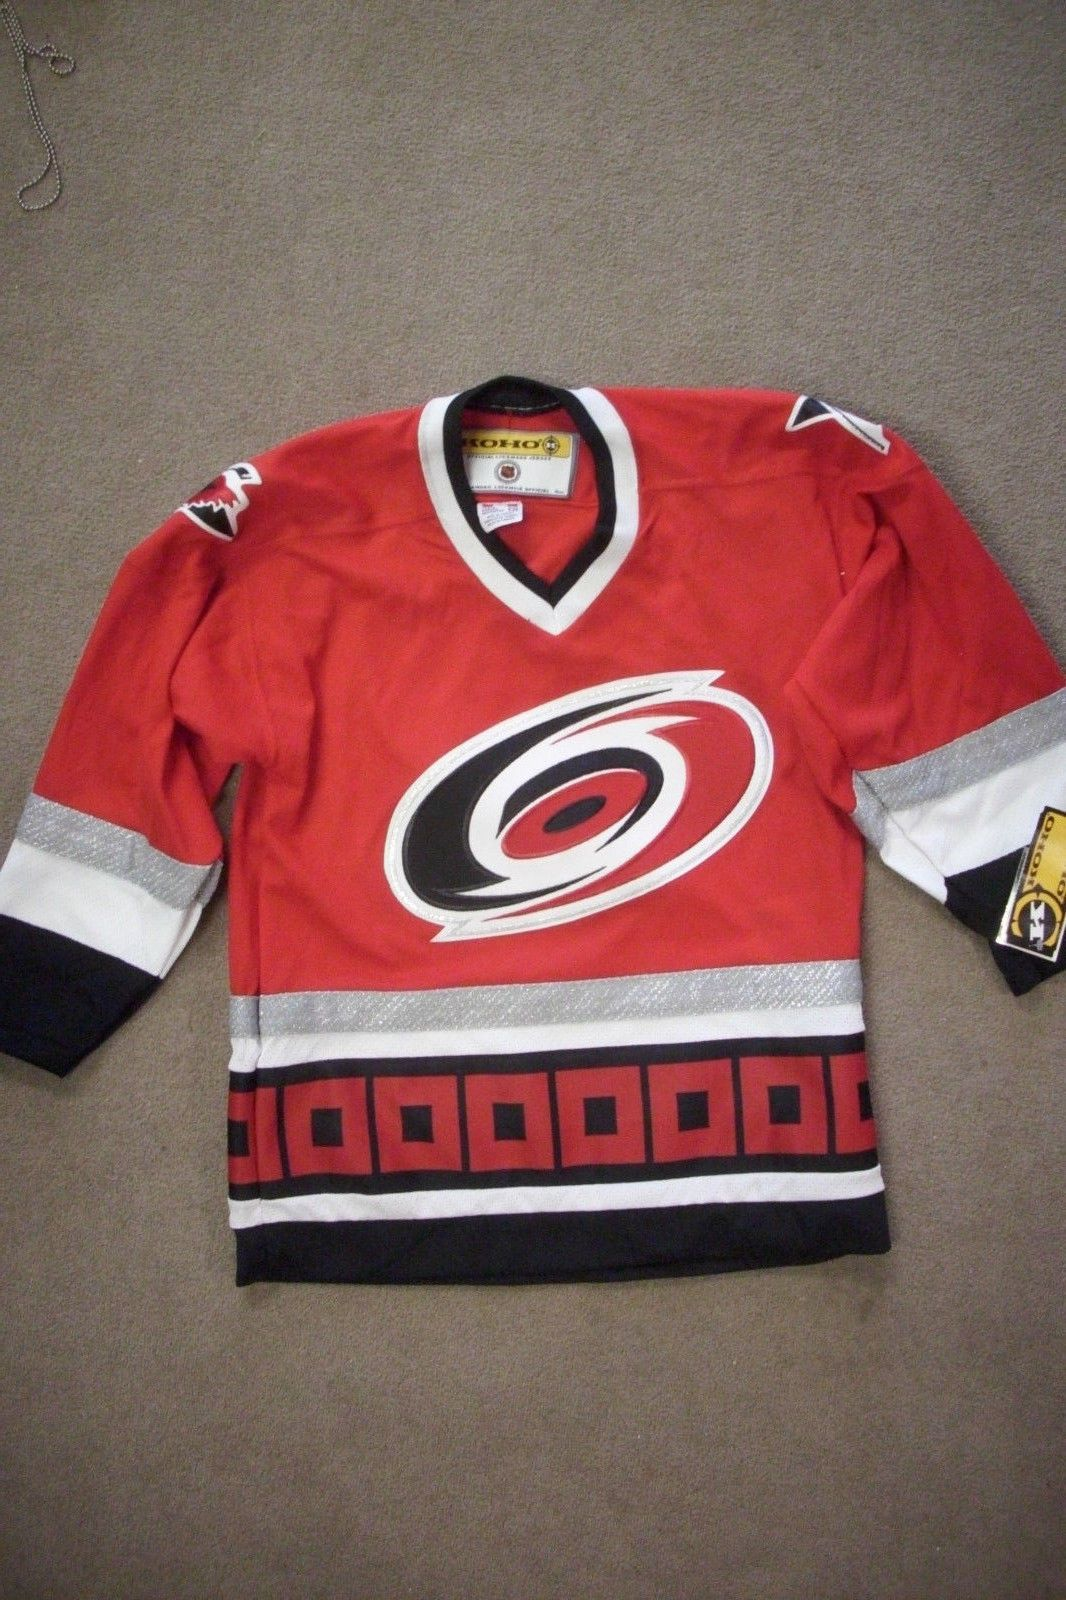 NEW WITH TAGS! Vintage CAROLINA HURRICANES KOHO HOCKEY JERSEY Youth L XL be89a3c95